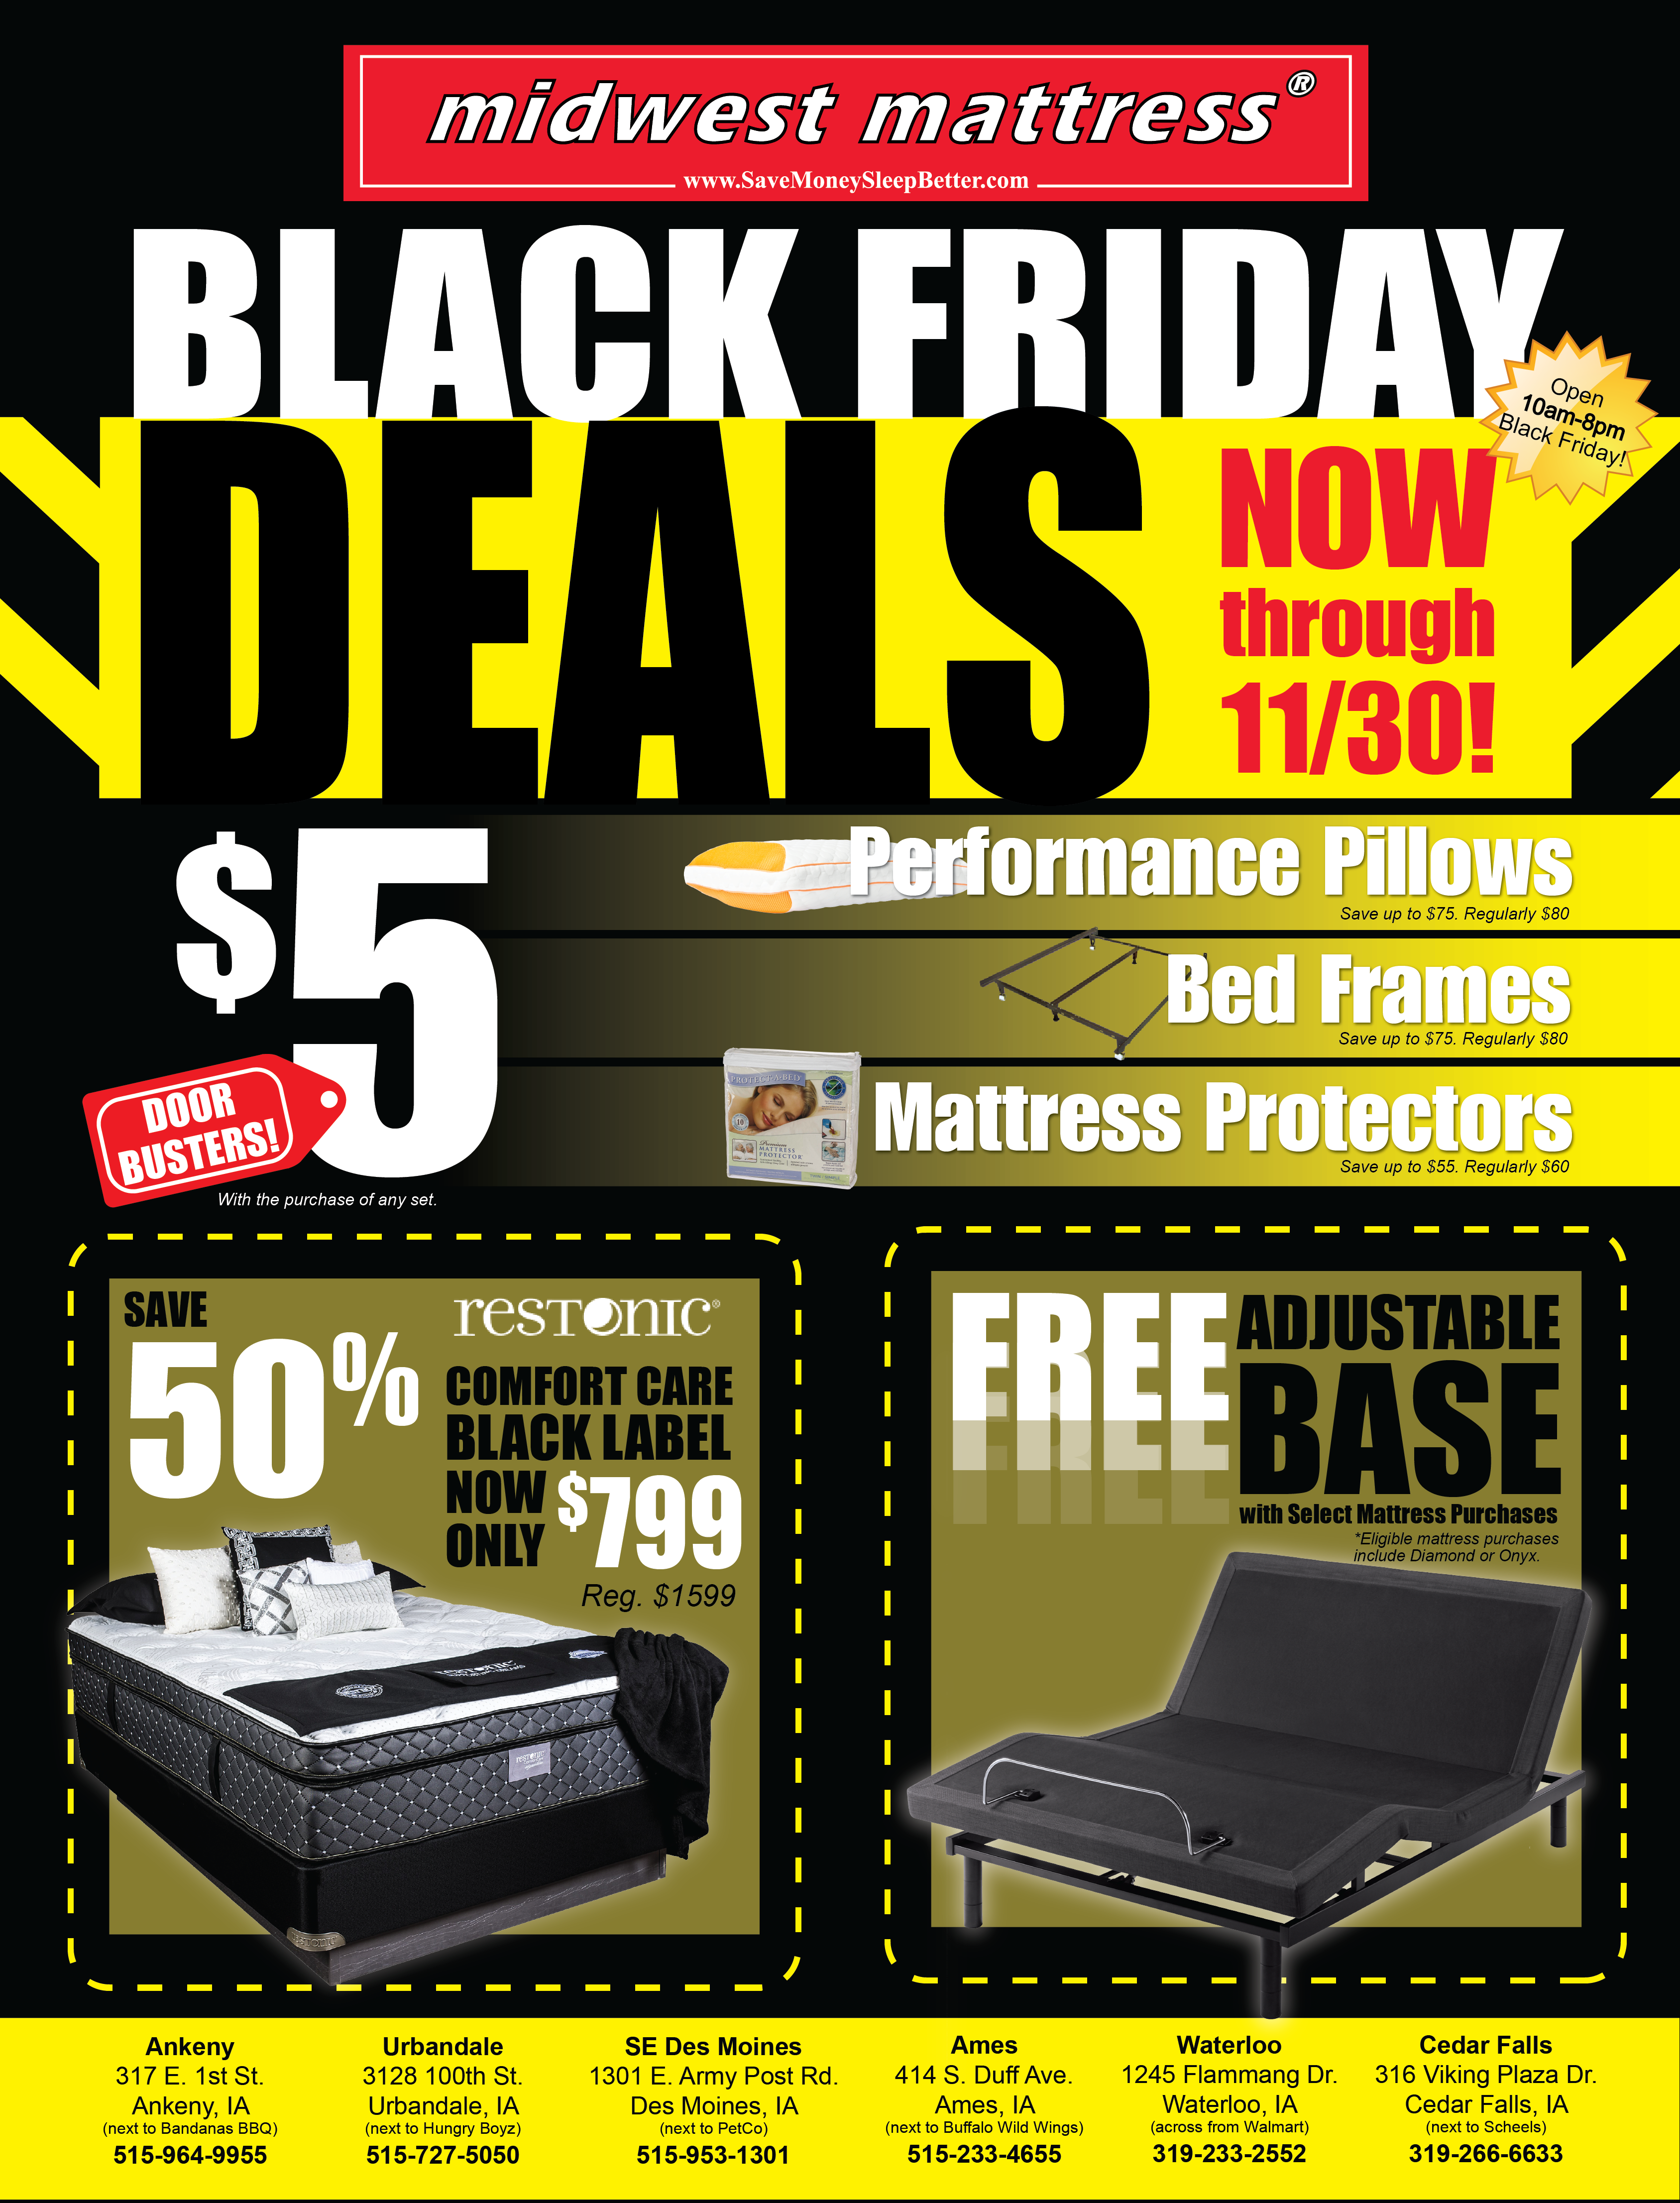 63763d604a Check out Midwest Mattress s latest Black Friday ad!